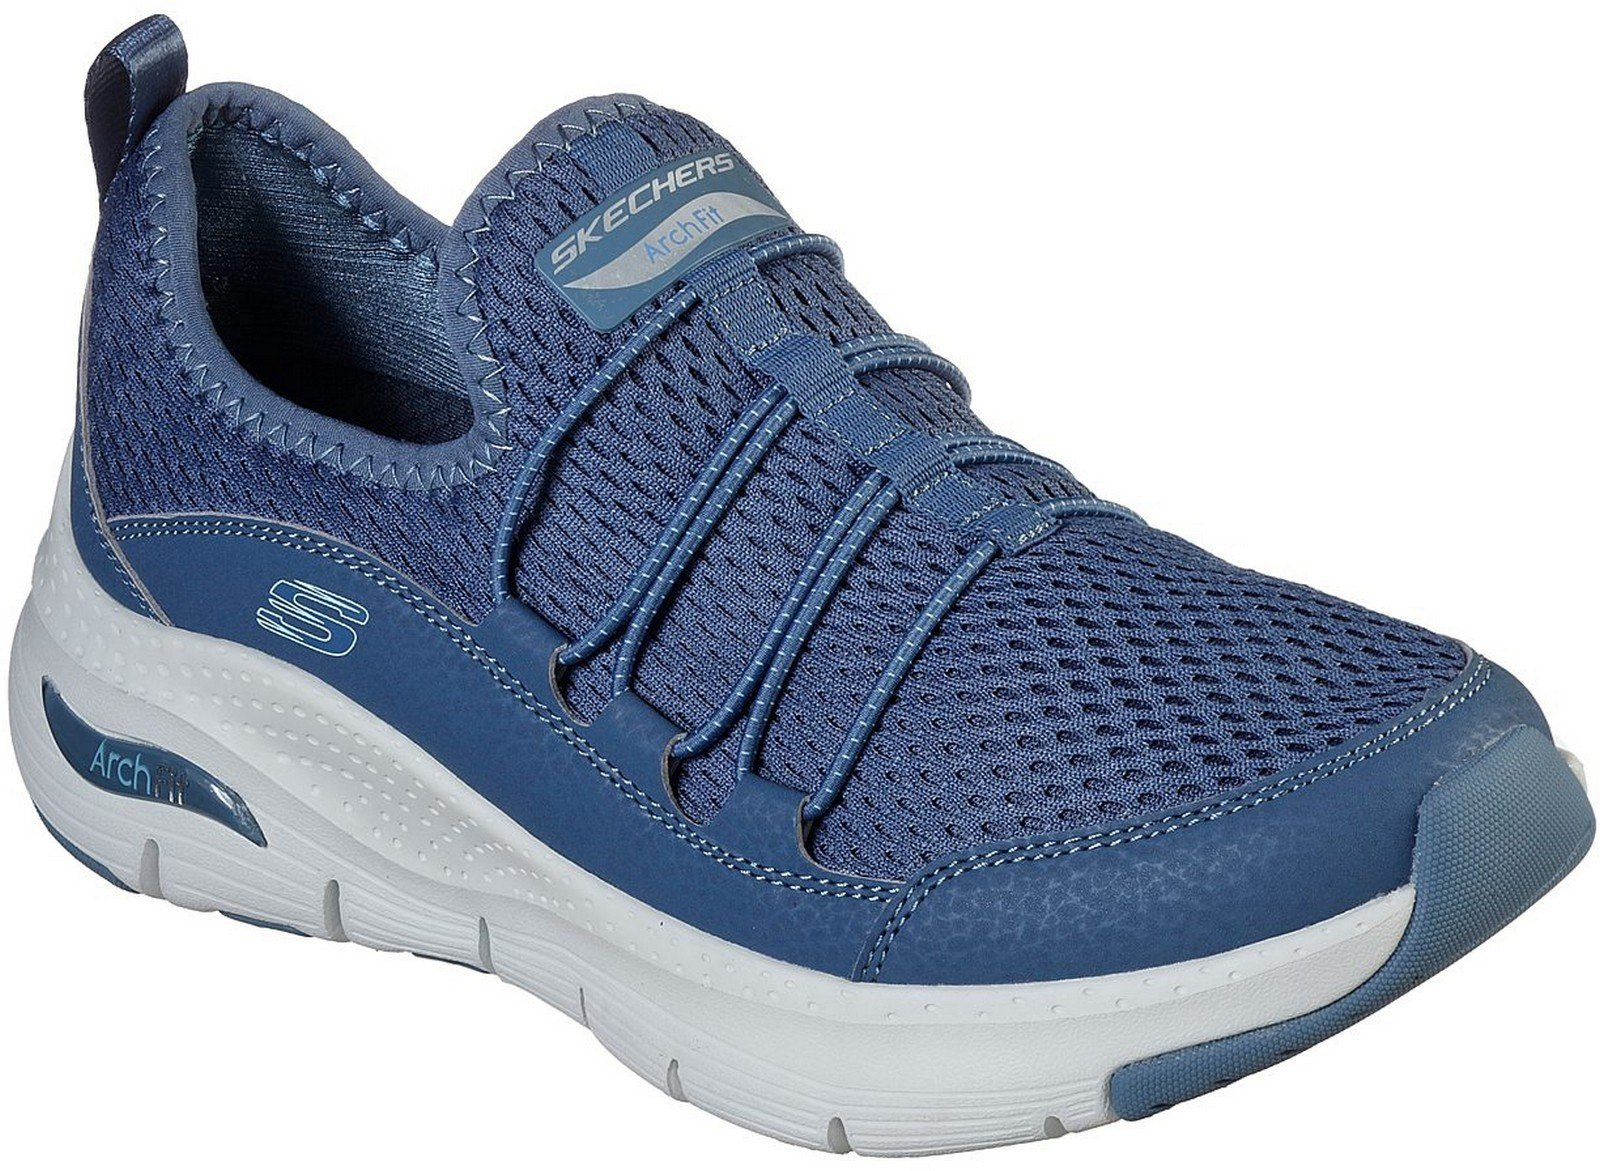 Skechers Women's Arch Fit Lucky Thoughts Sports Shoe Various Colour 30318 - Navy 3